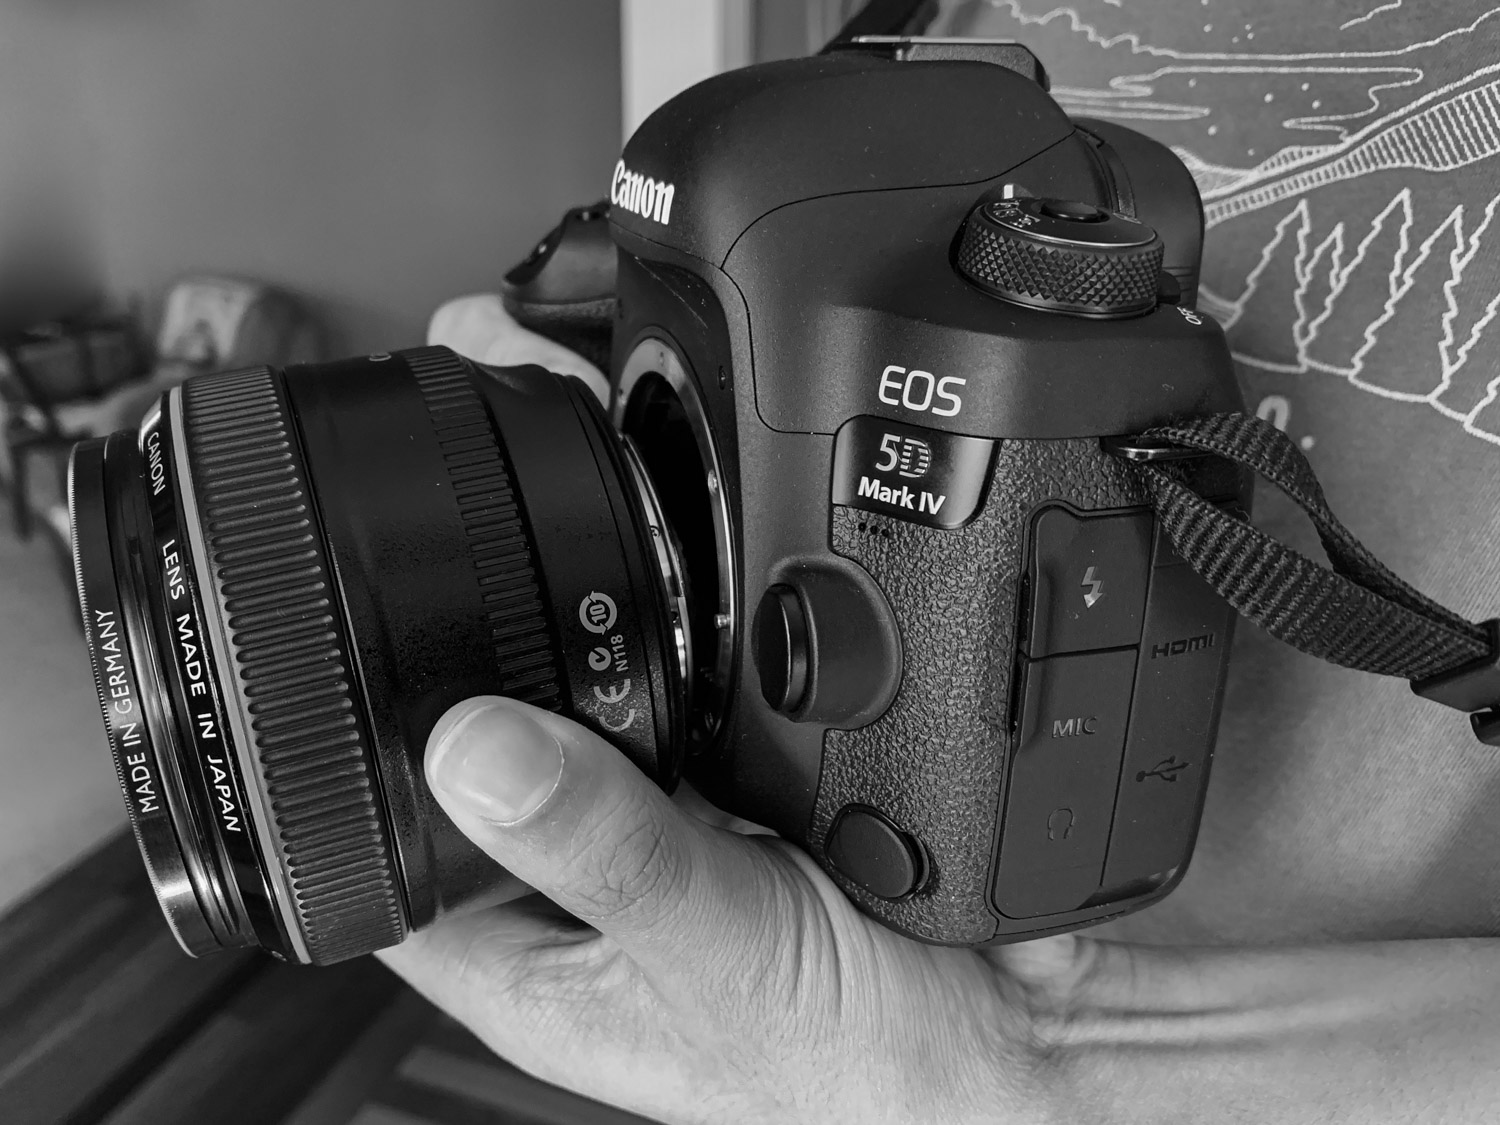 Freelensing for Creative Photography - how to hold the camera and lens